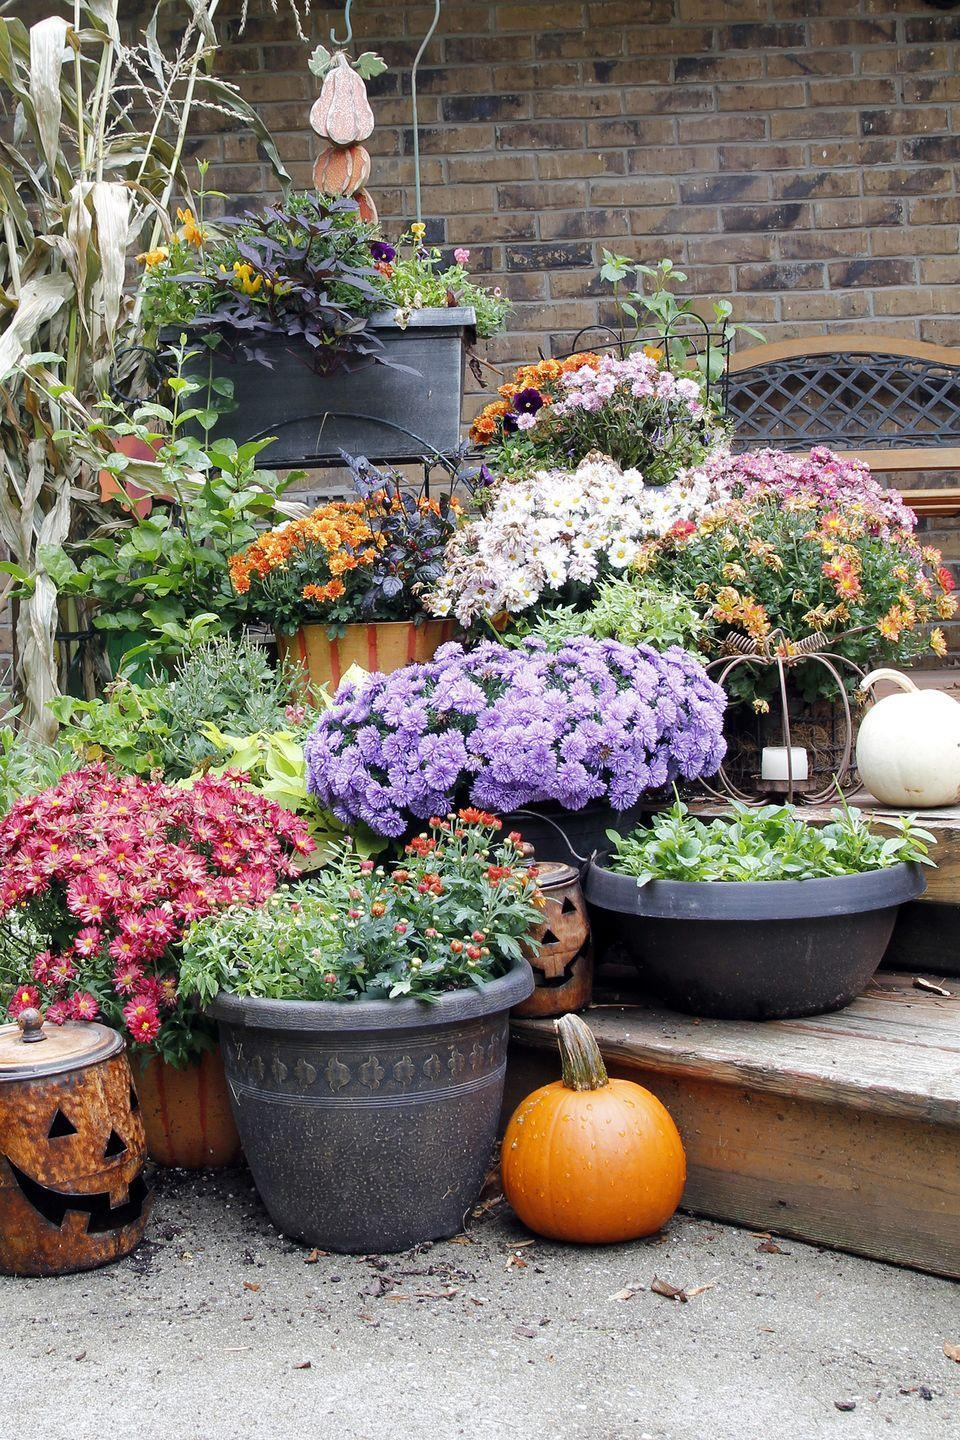 "<p>Give your garden an autumn makeover by filling planters and flower beds with fall favorites. You simply can't go wrong with mums!</p><p><a class=""link rapid-noclick-resp"" href=""https://www.amazon.com/dp/B00IF0MHP8/ref=dp_cerb_3?tag=syn-yahoo-20&ascsubtag=%5Bartid%7C10050.g.2633%5Bsrc%7Cyahoo-us"" rel=""nofollow noopener"" target=""_blank"" data-ylk=""slk:SHOP PLANTERS"">SHOP PLANTERS</a> </p>"